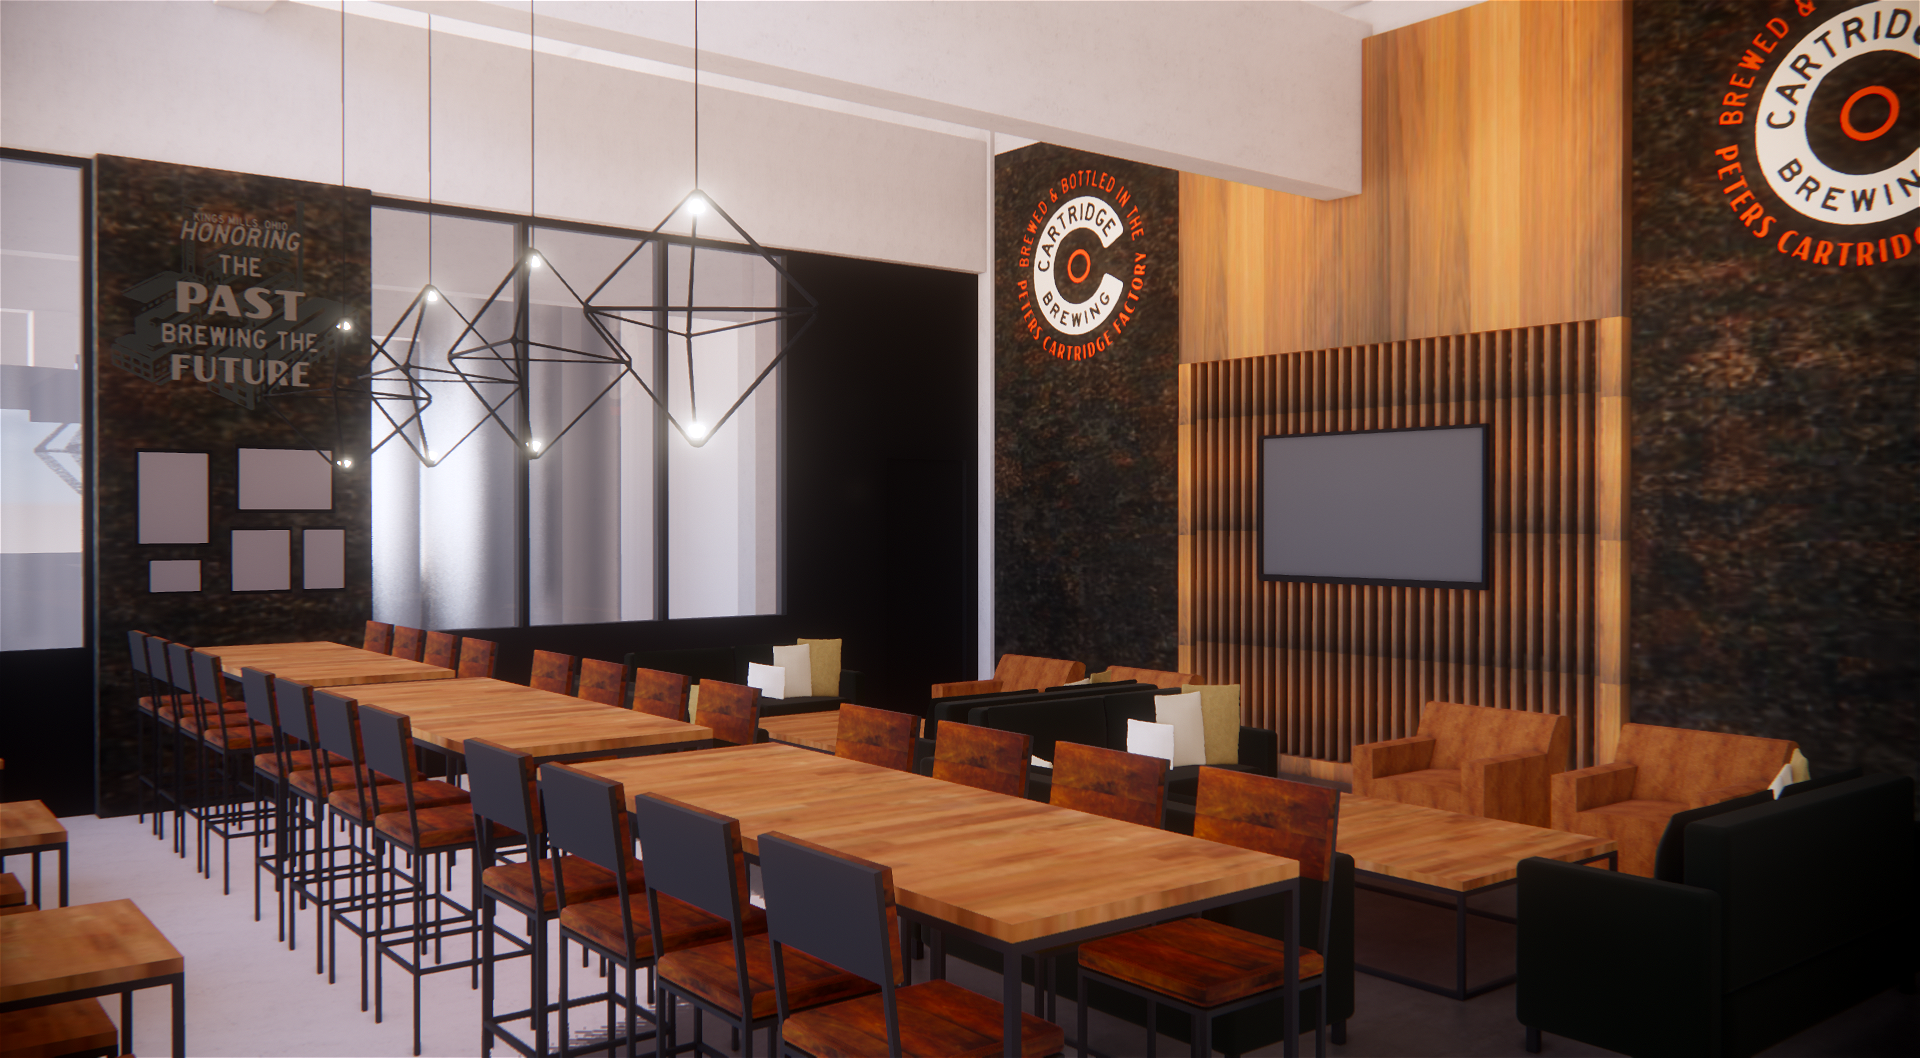 A rendering of Cartridge Brewing's taproom when it is completed / Image courtesy of Lindsey Hackbarth, co-founder of Cartridge Brewing // Published: 2.28.19